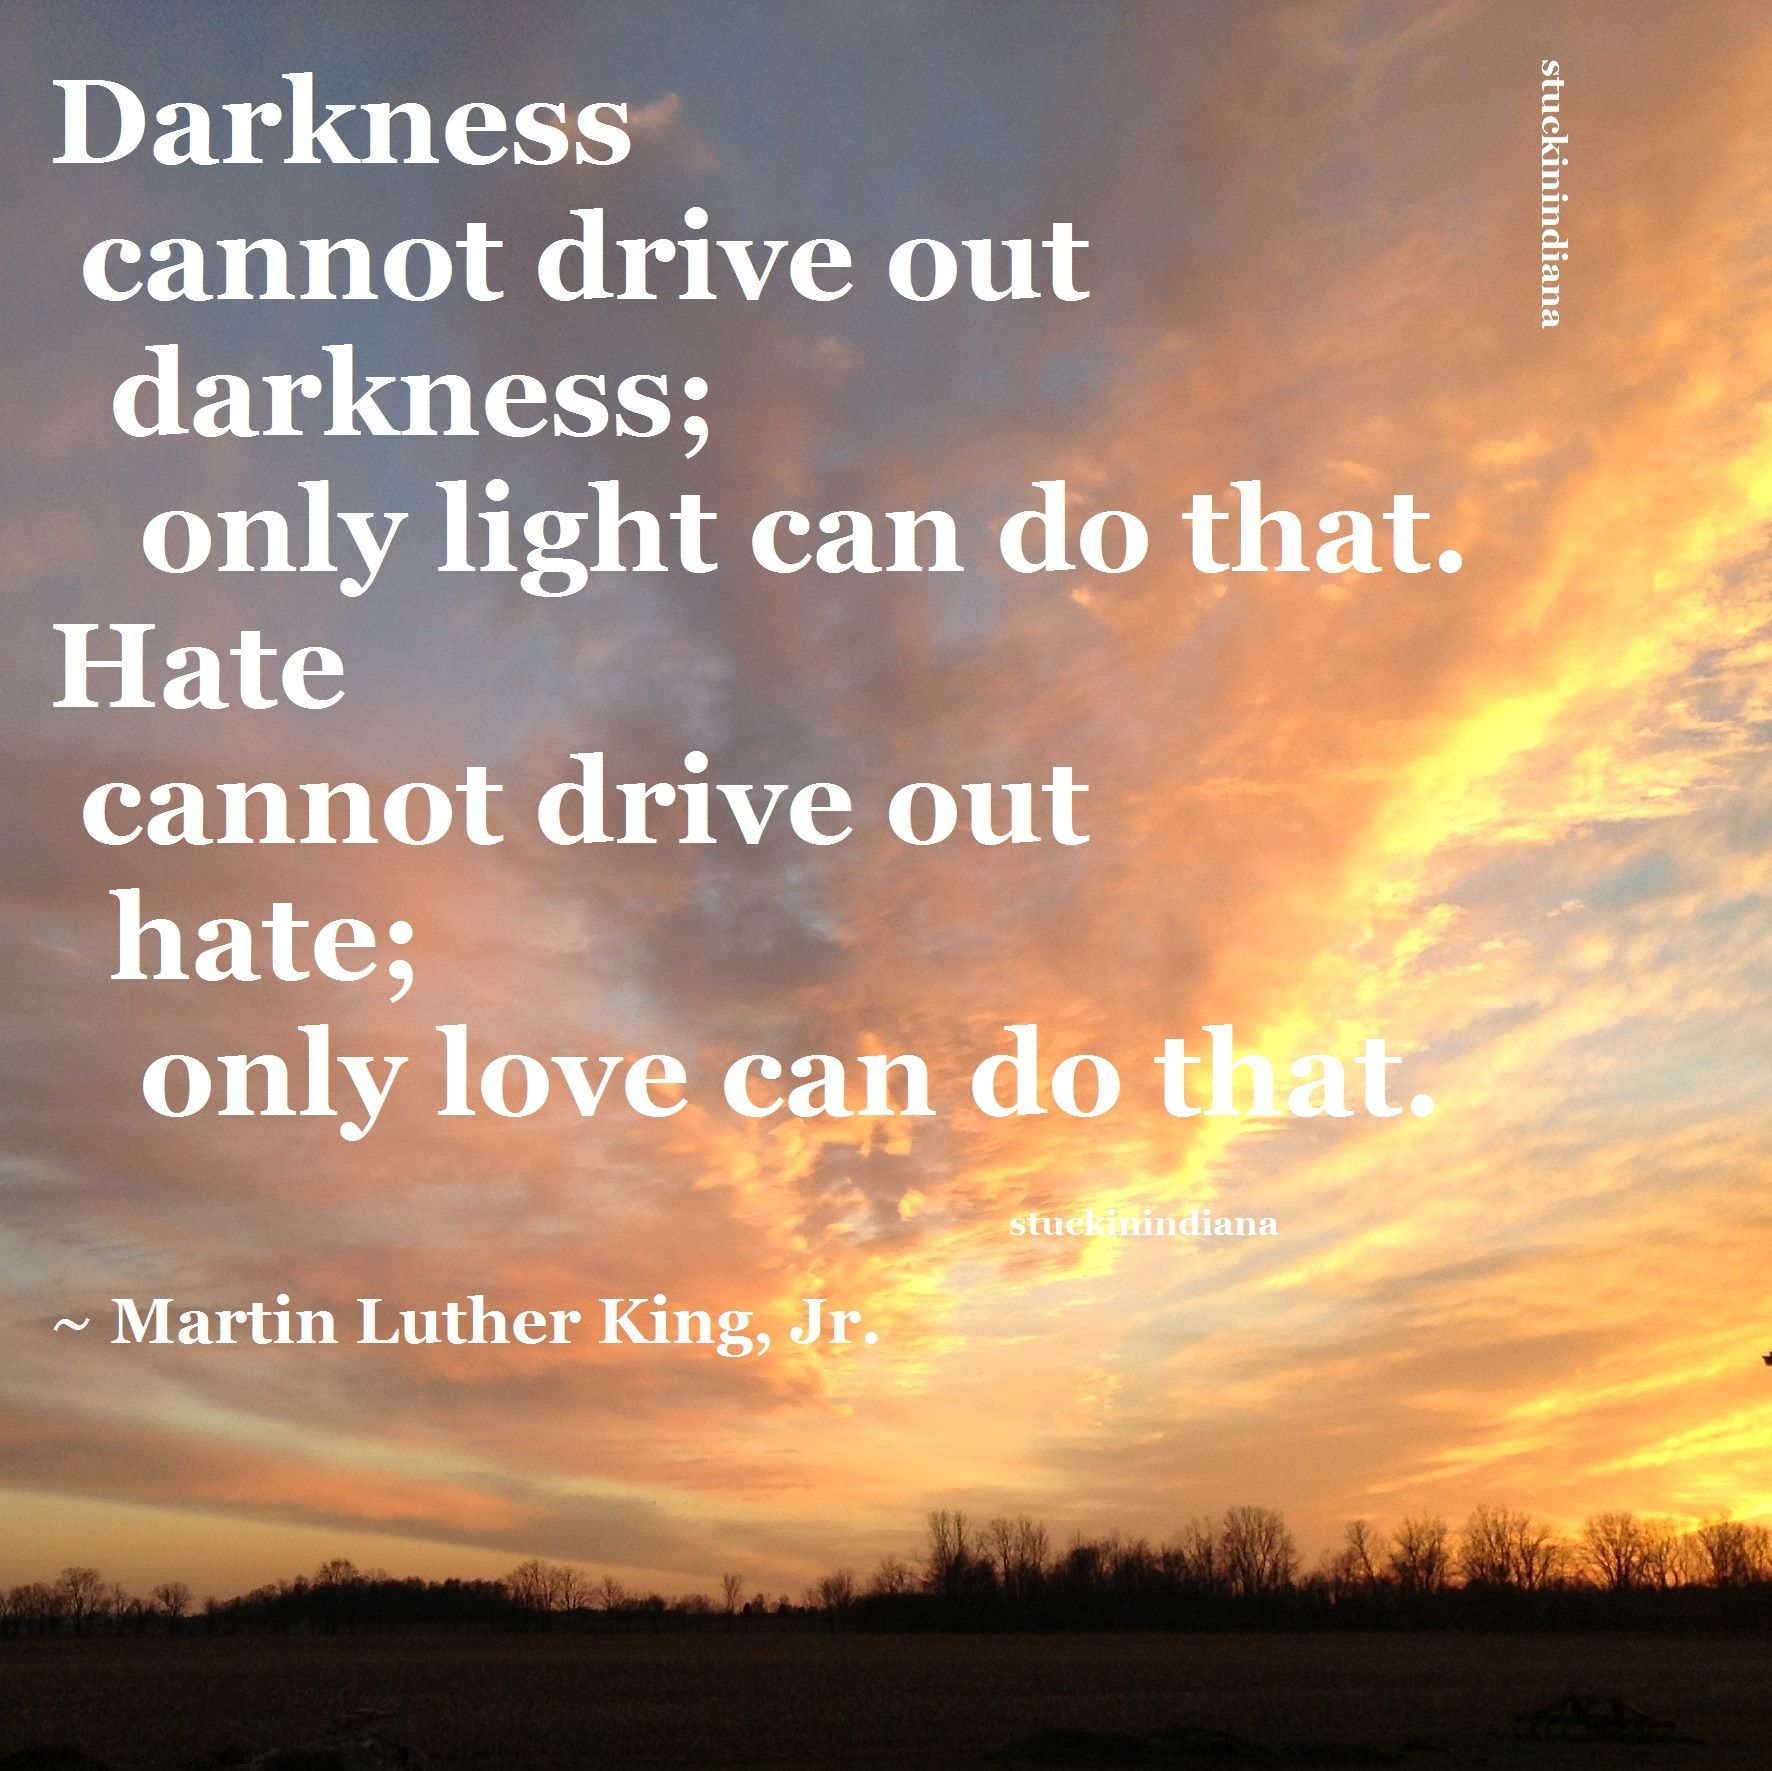 Martin luther king darkness cannot drive out darkness only light can do that